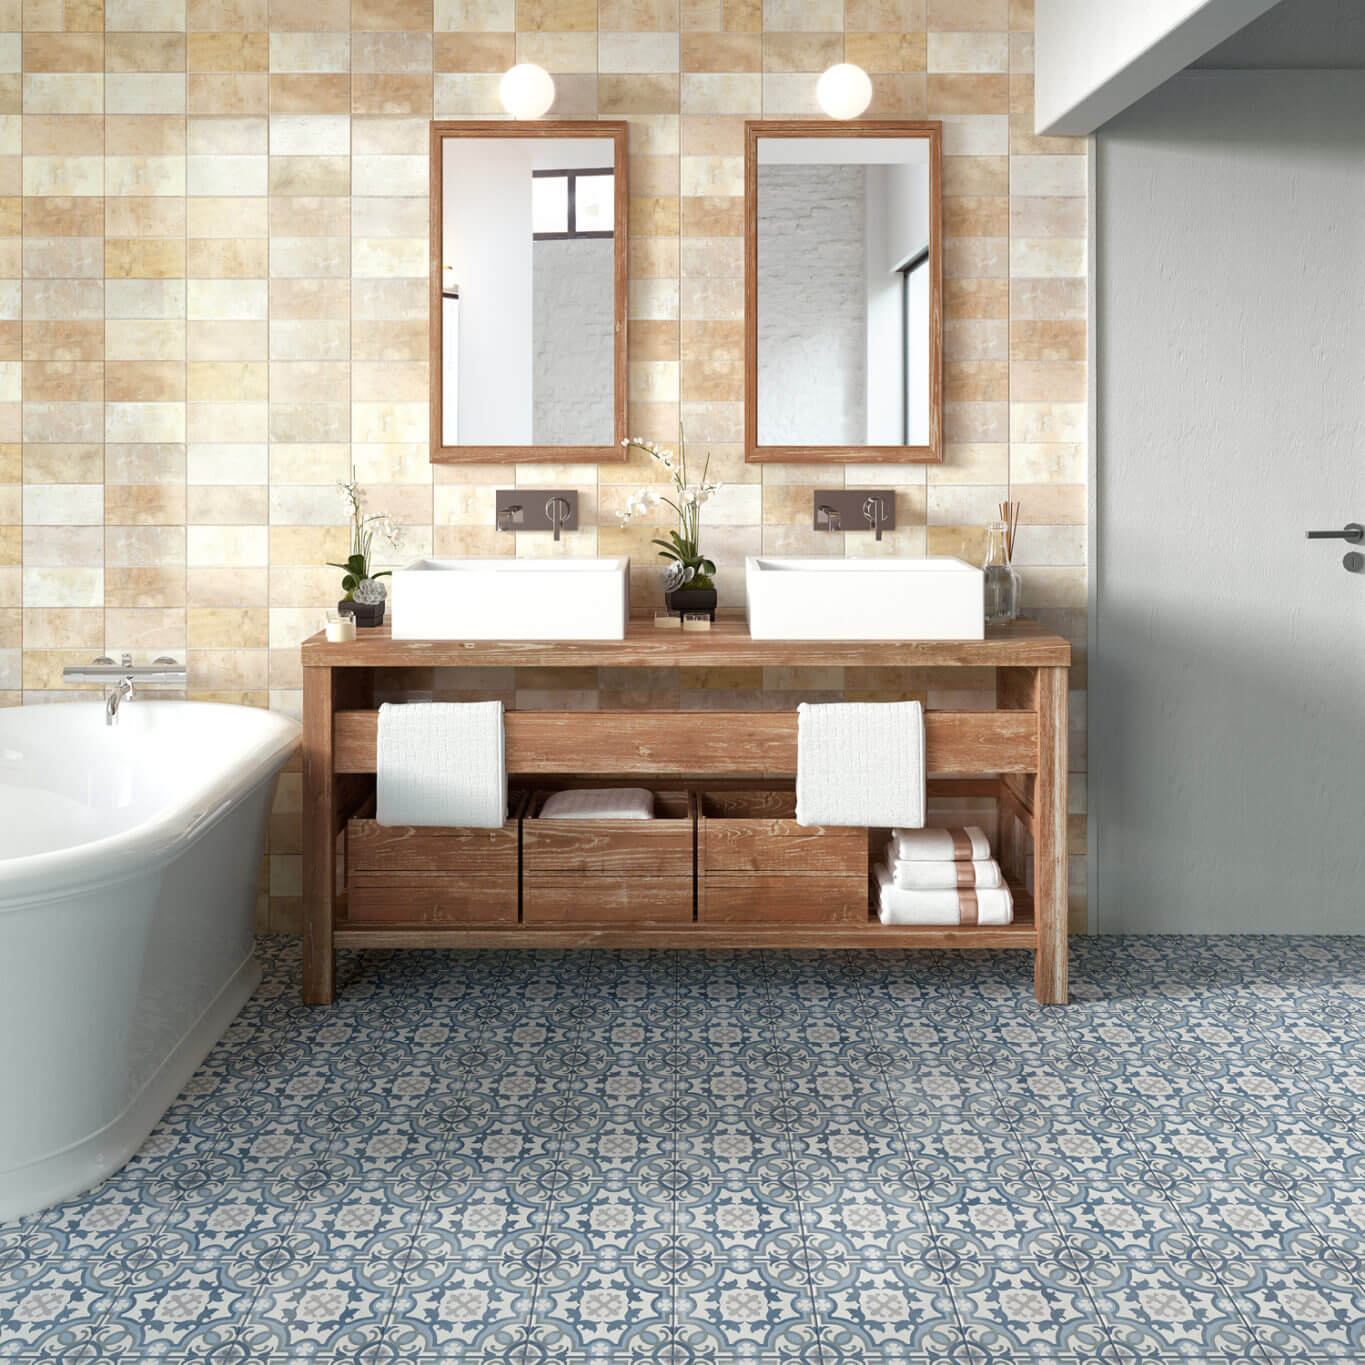 Bathroom with patterned tile flooring